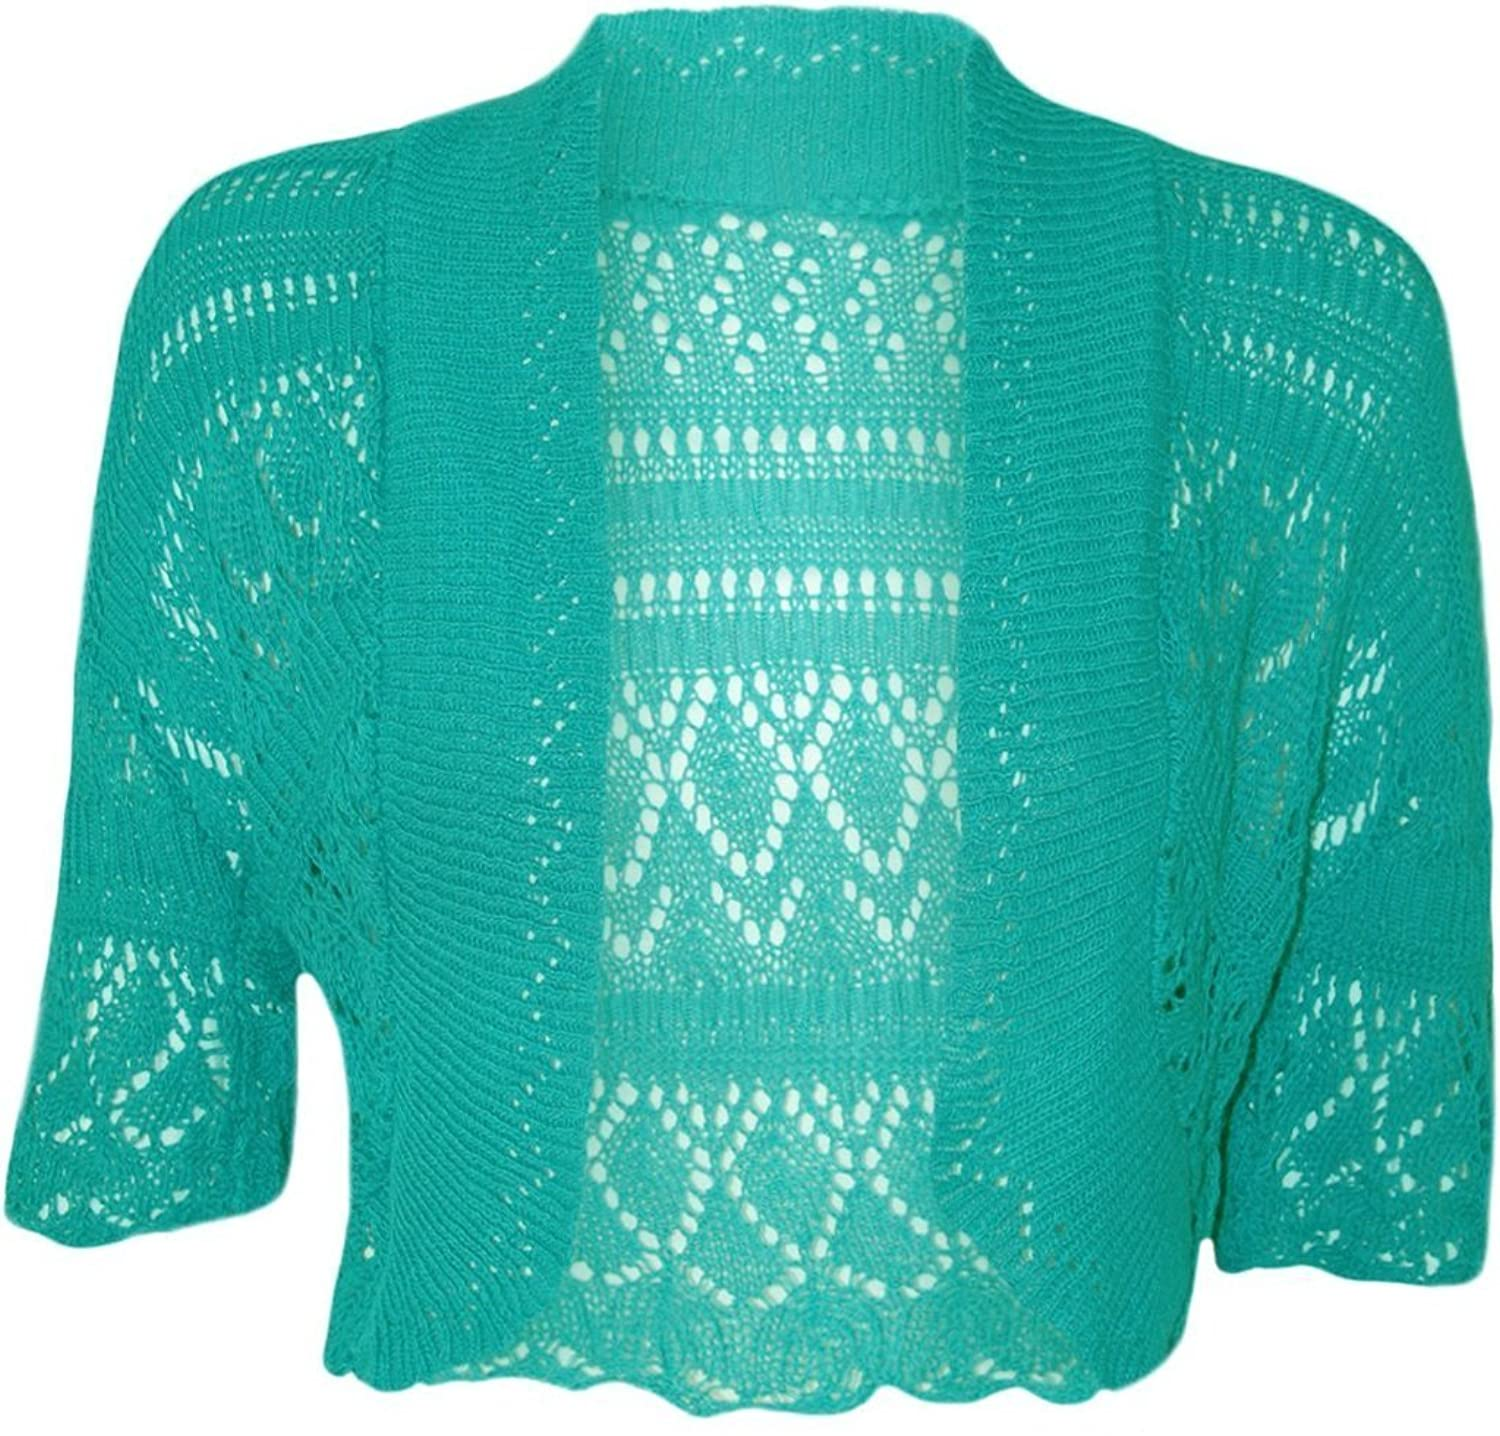 Women Ladies Crochet Knitted Shrug Cardigan Bolero Sweater at ...